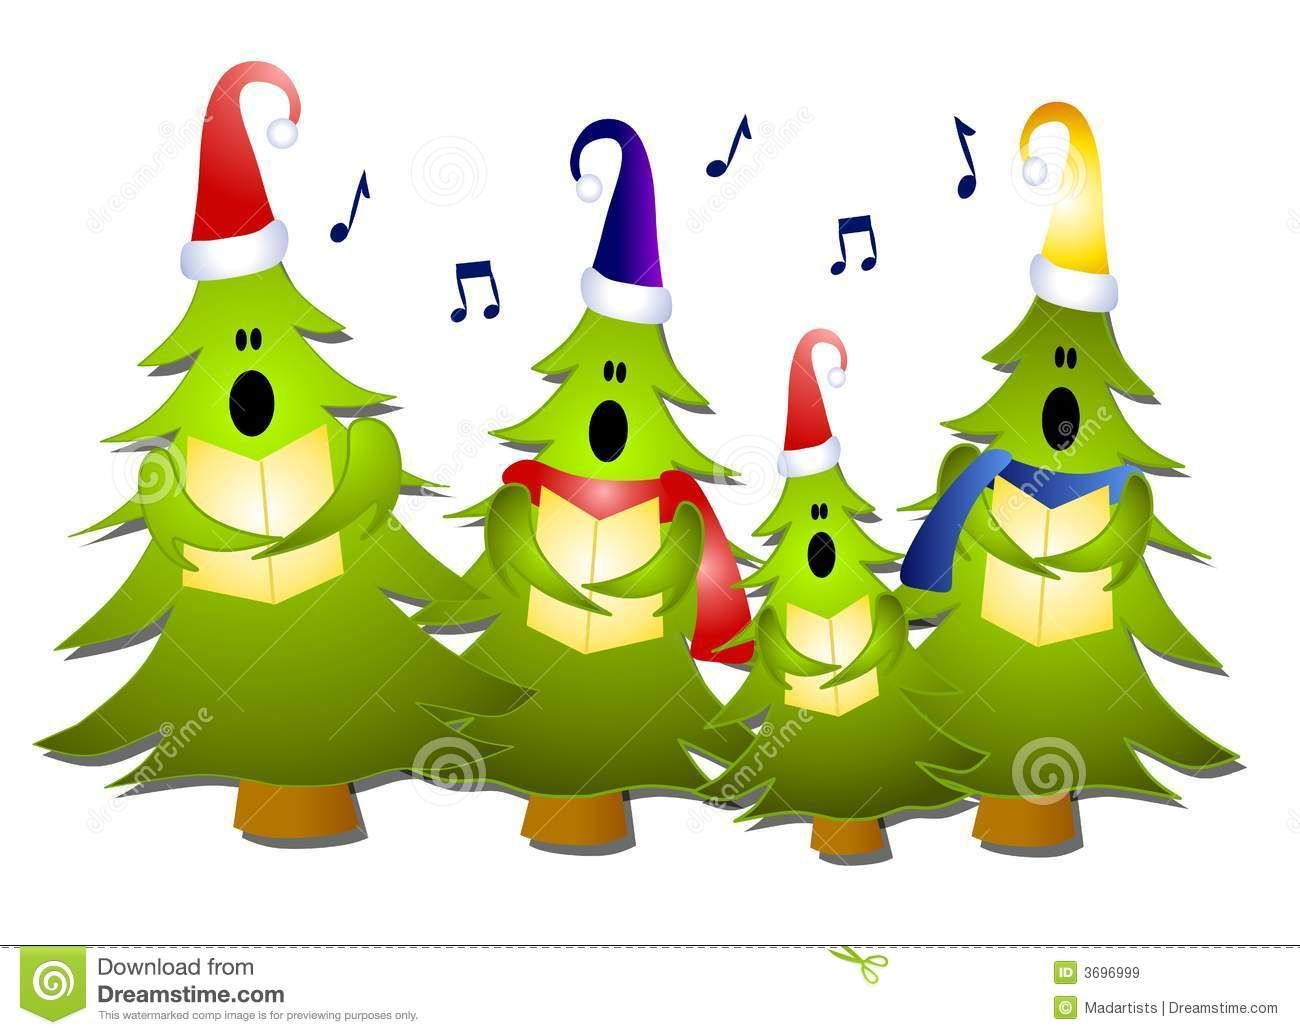 Christmas Singing Images.Clip Art Illustration Of A Group Of Christmas Tree Carolers